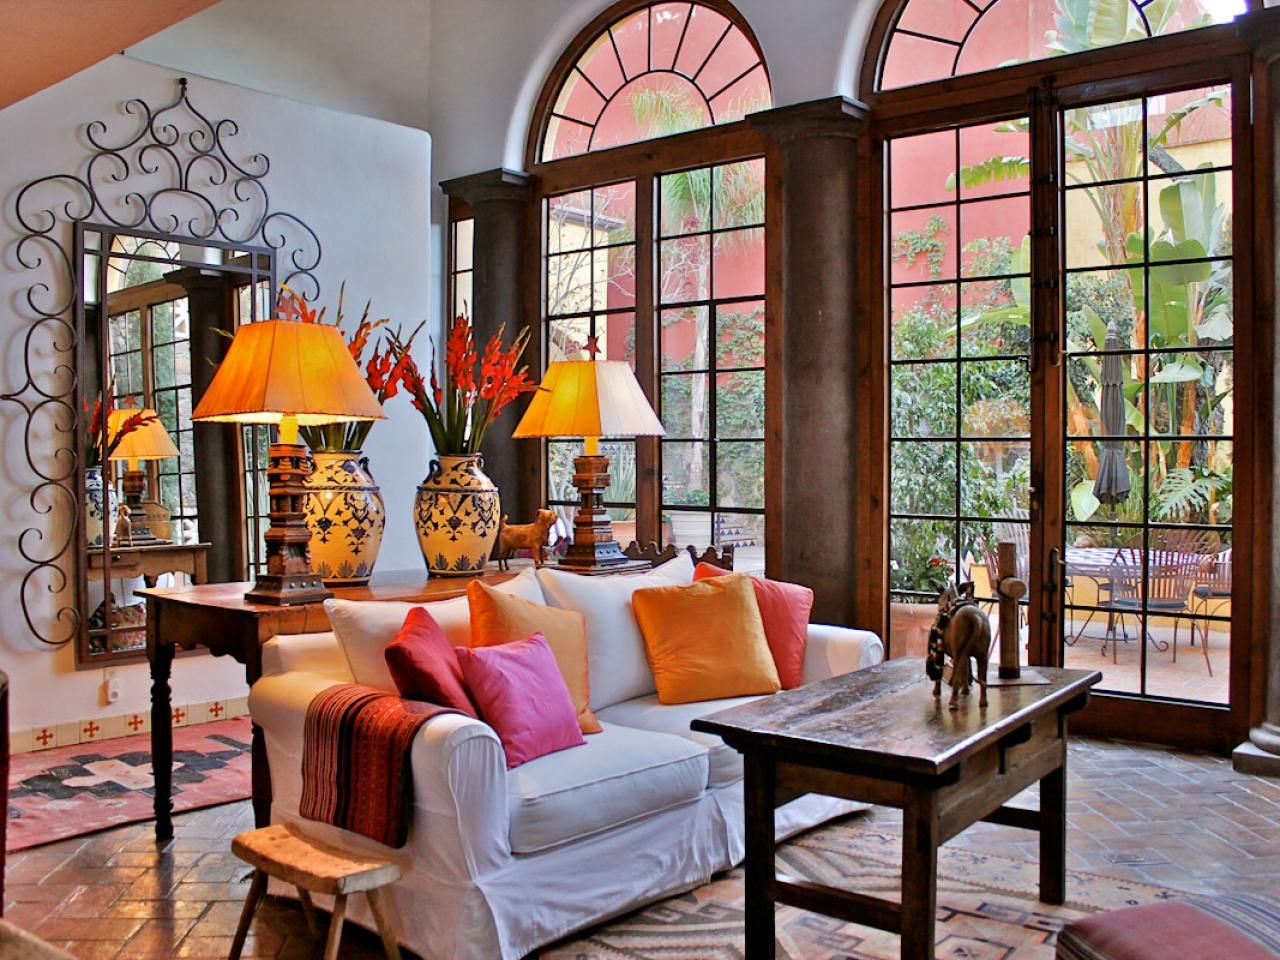 10 spanish inspired rooms room interior design room interior and hgtv - Spanish home interior design ideas ...